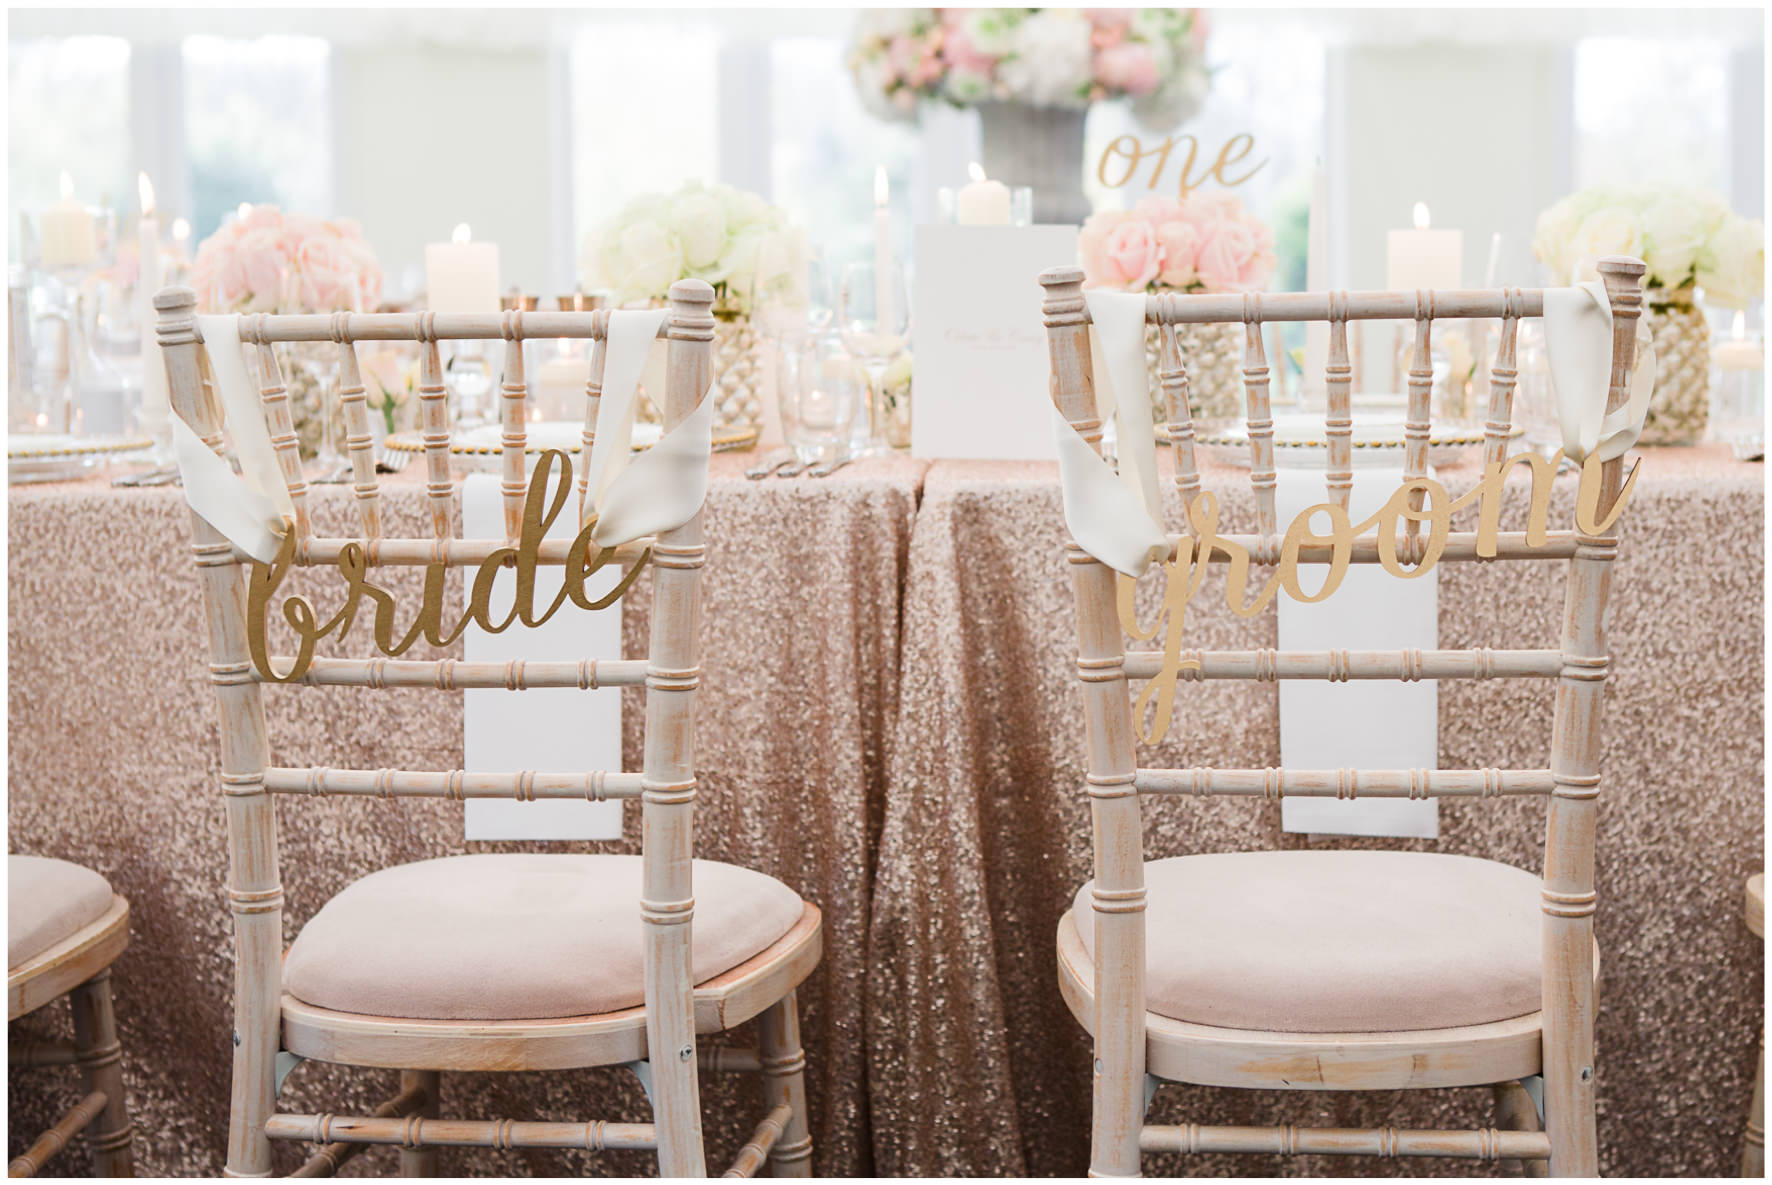 Lucy Davenport Photography, Katrina Otter Weddings, Chippenham Park, tablescape, wedding chairs